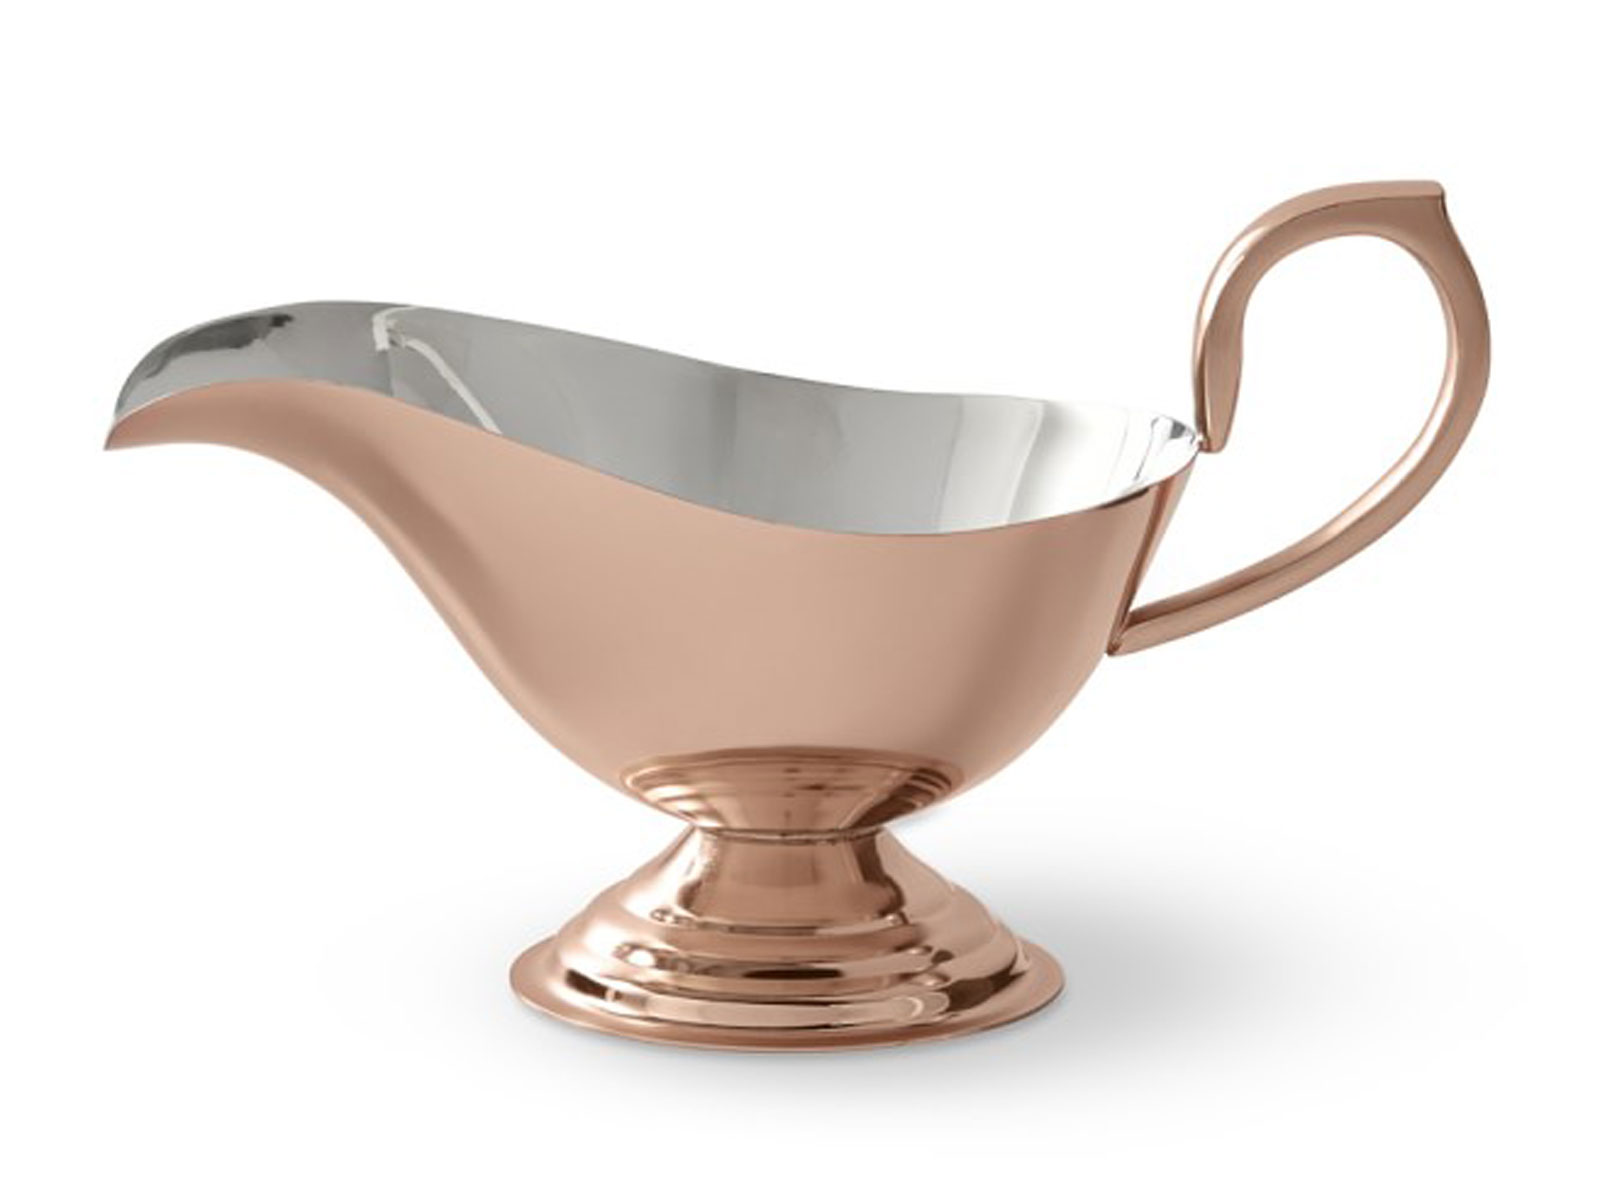 copper gravy boat